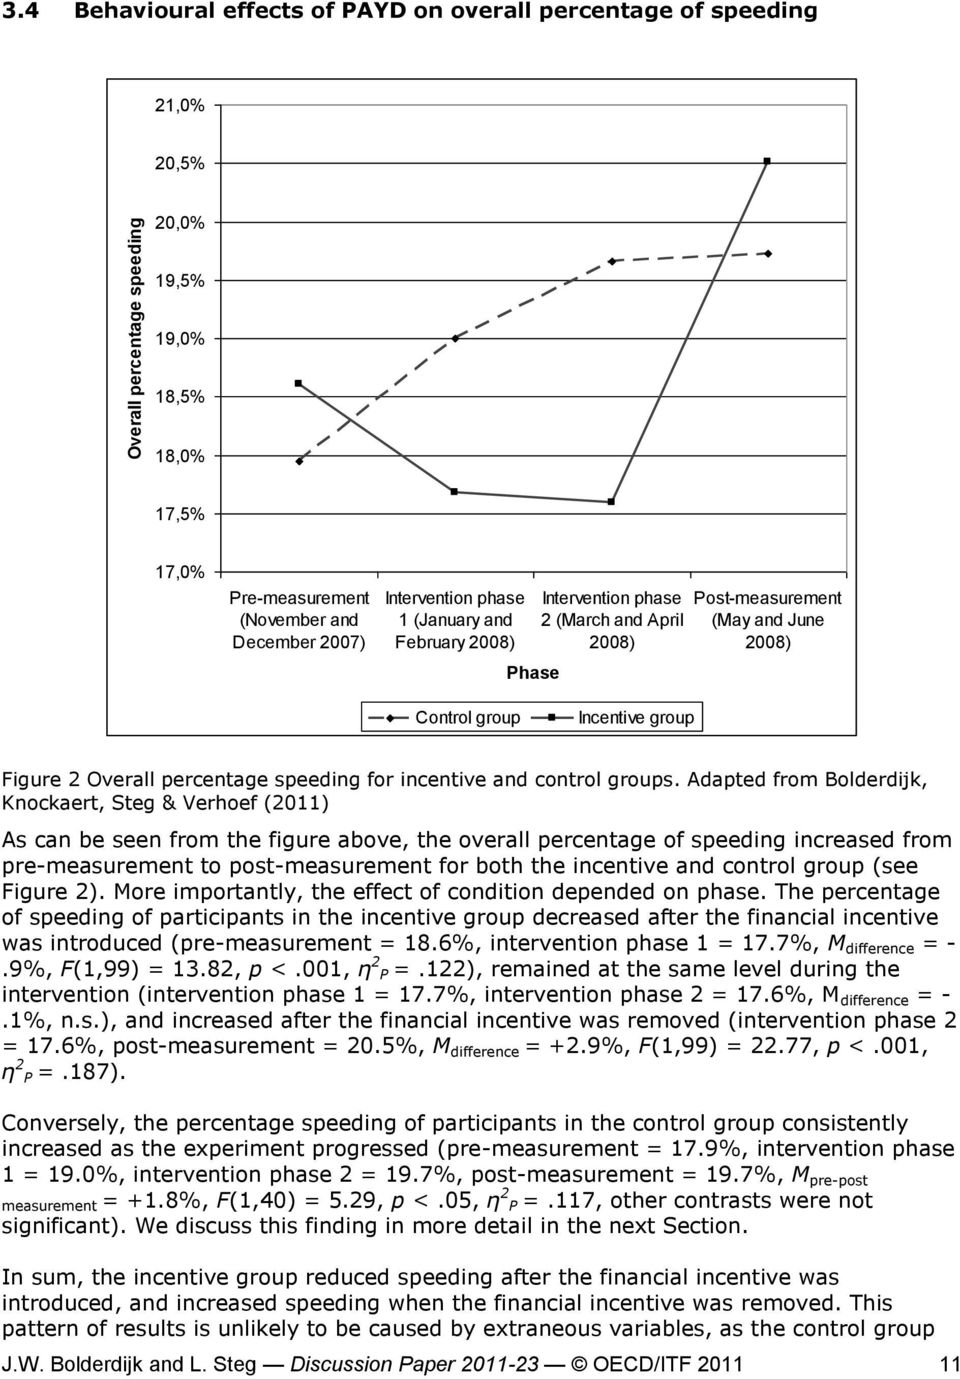 February 2008) Phase Intervention phase 2 (March and April 2008) Post-measurement (May and June 2008) Control group Incentive group Figure 2 Overall percentage speeding for incentive and control